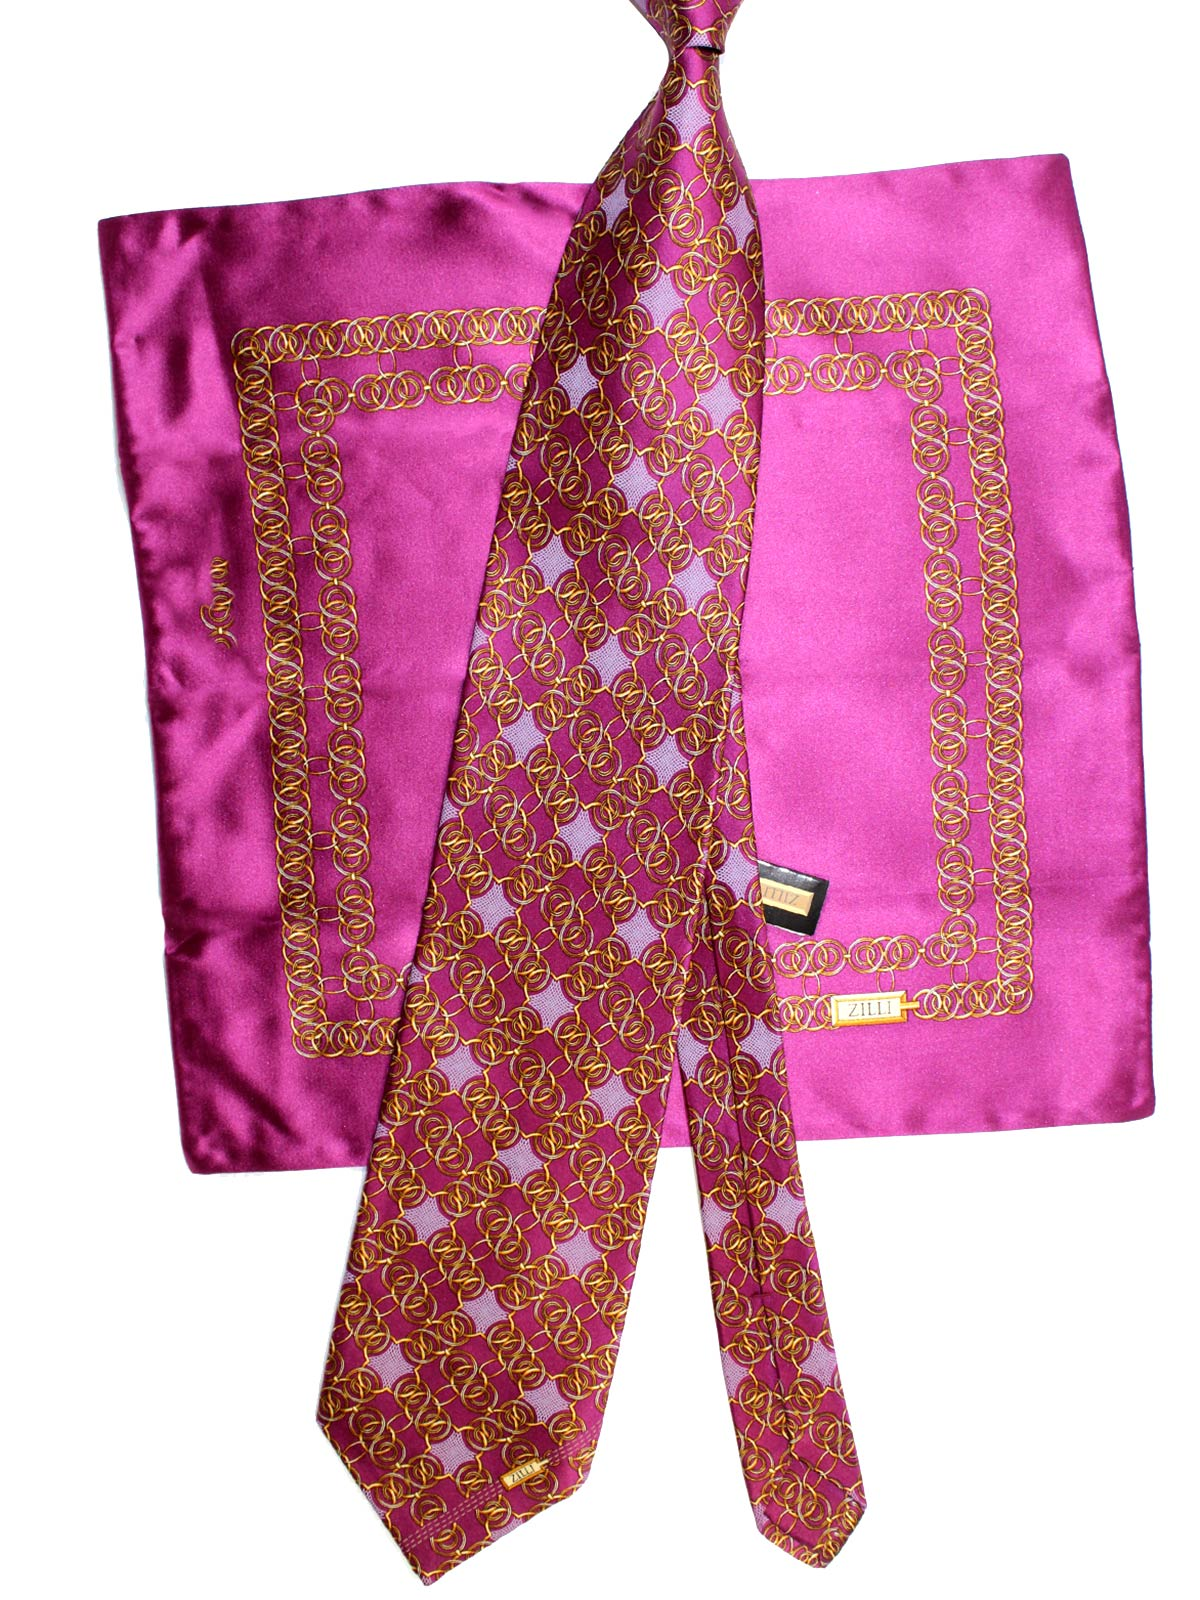 Zilli Silk Tie & Pocket Square Set Purple Orange Gold Geometric